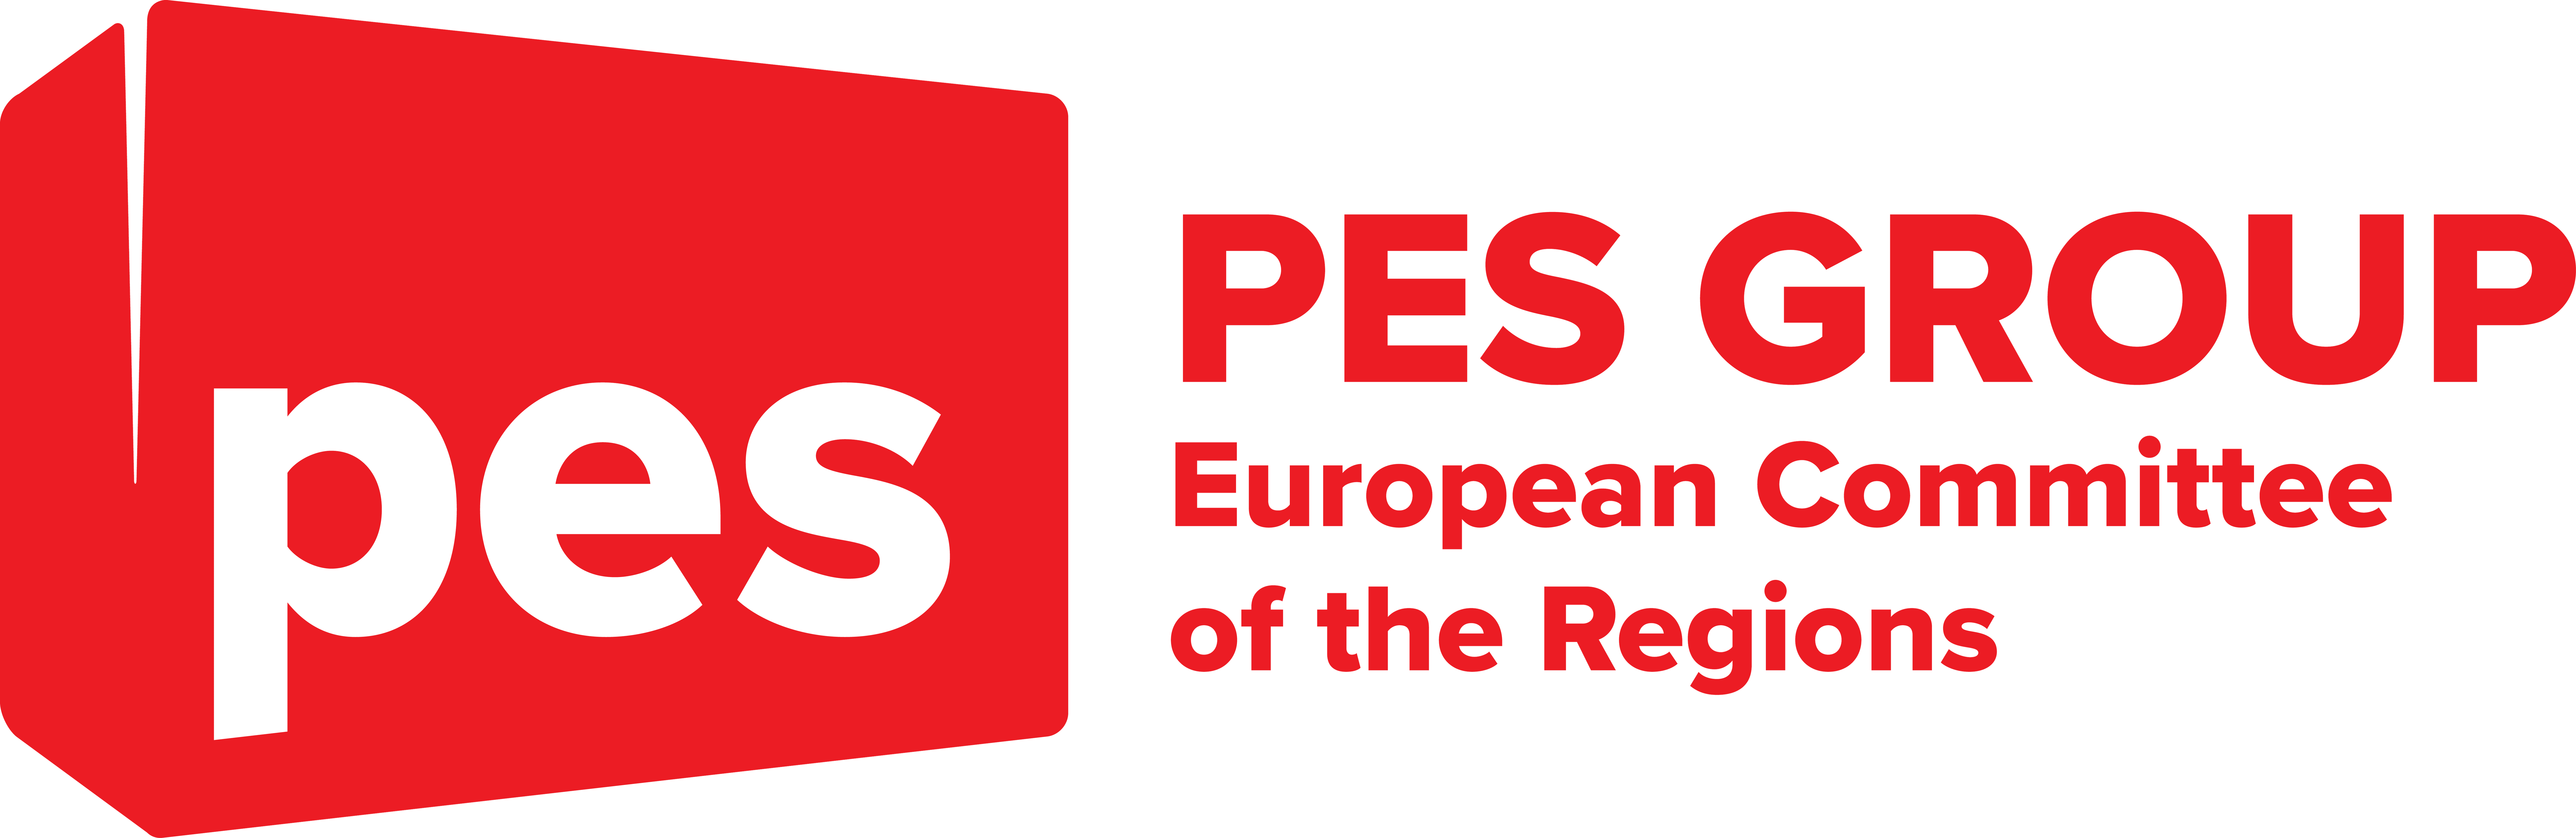 PES GROUP : European Committee of the Regions